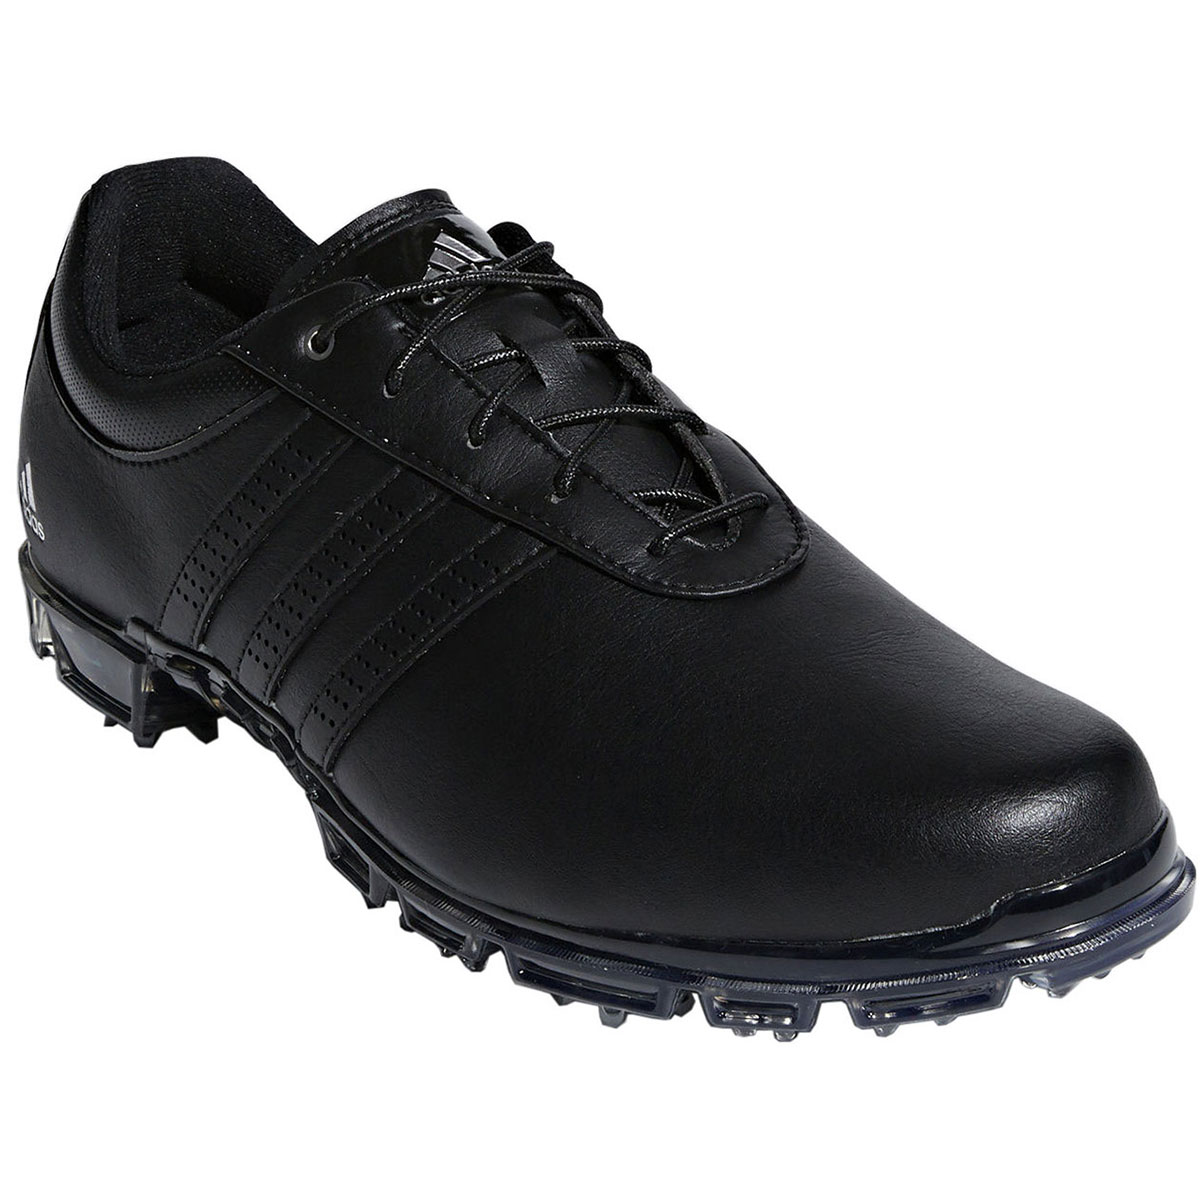 Adidas Golf Adipure Flex Shoes From American Golf